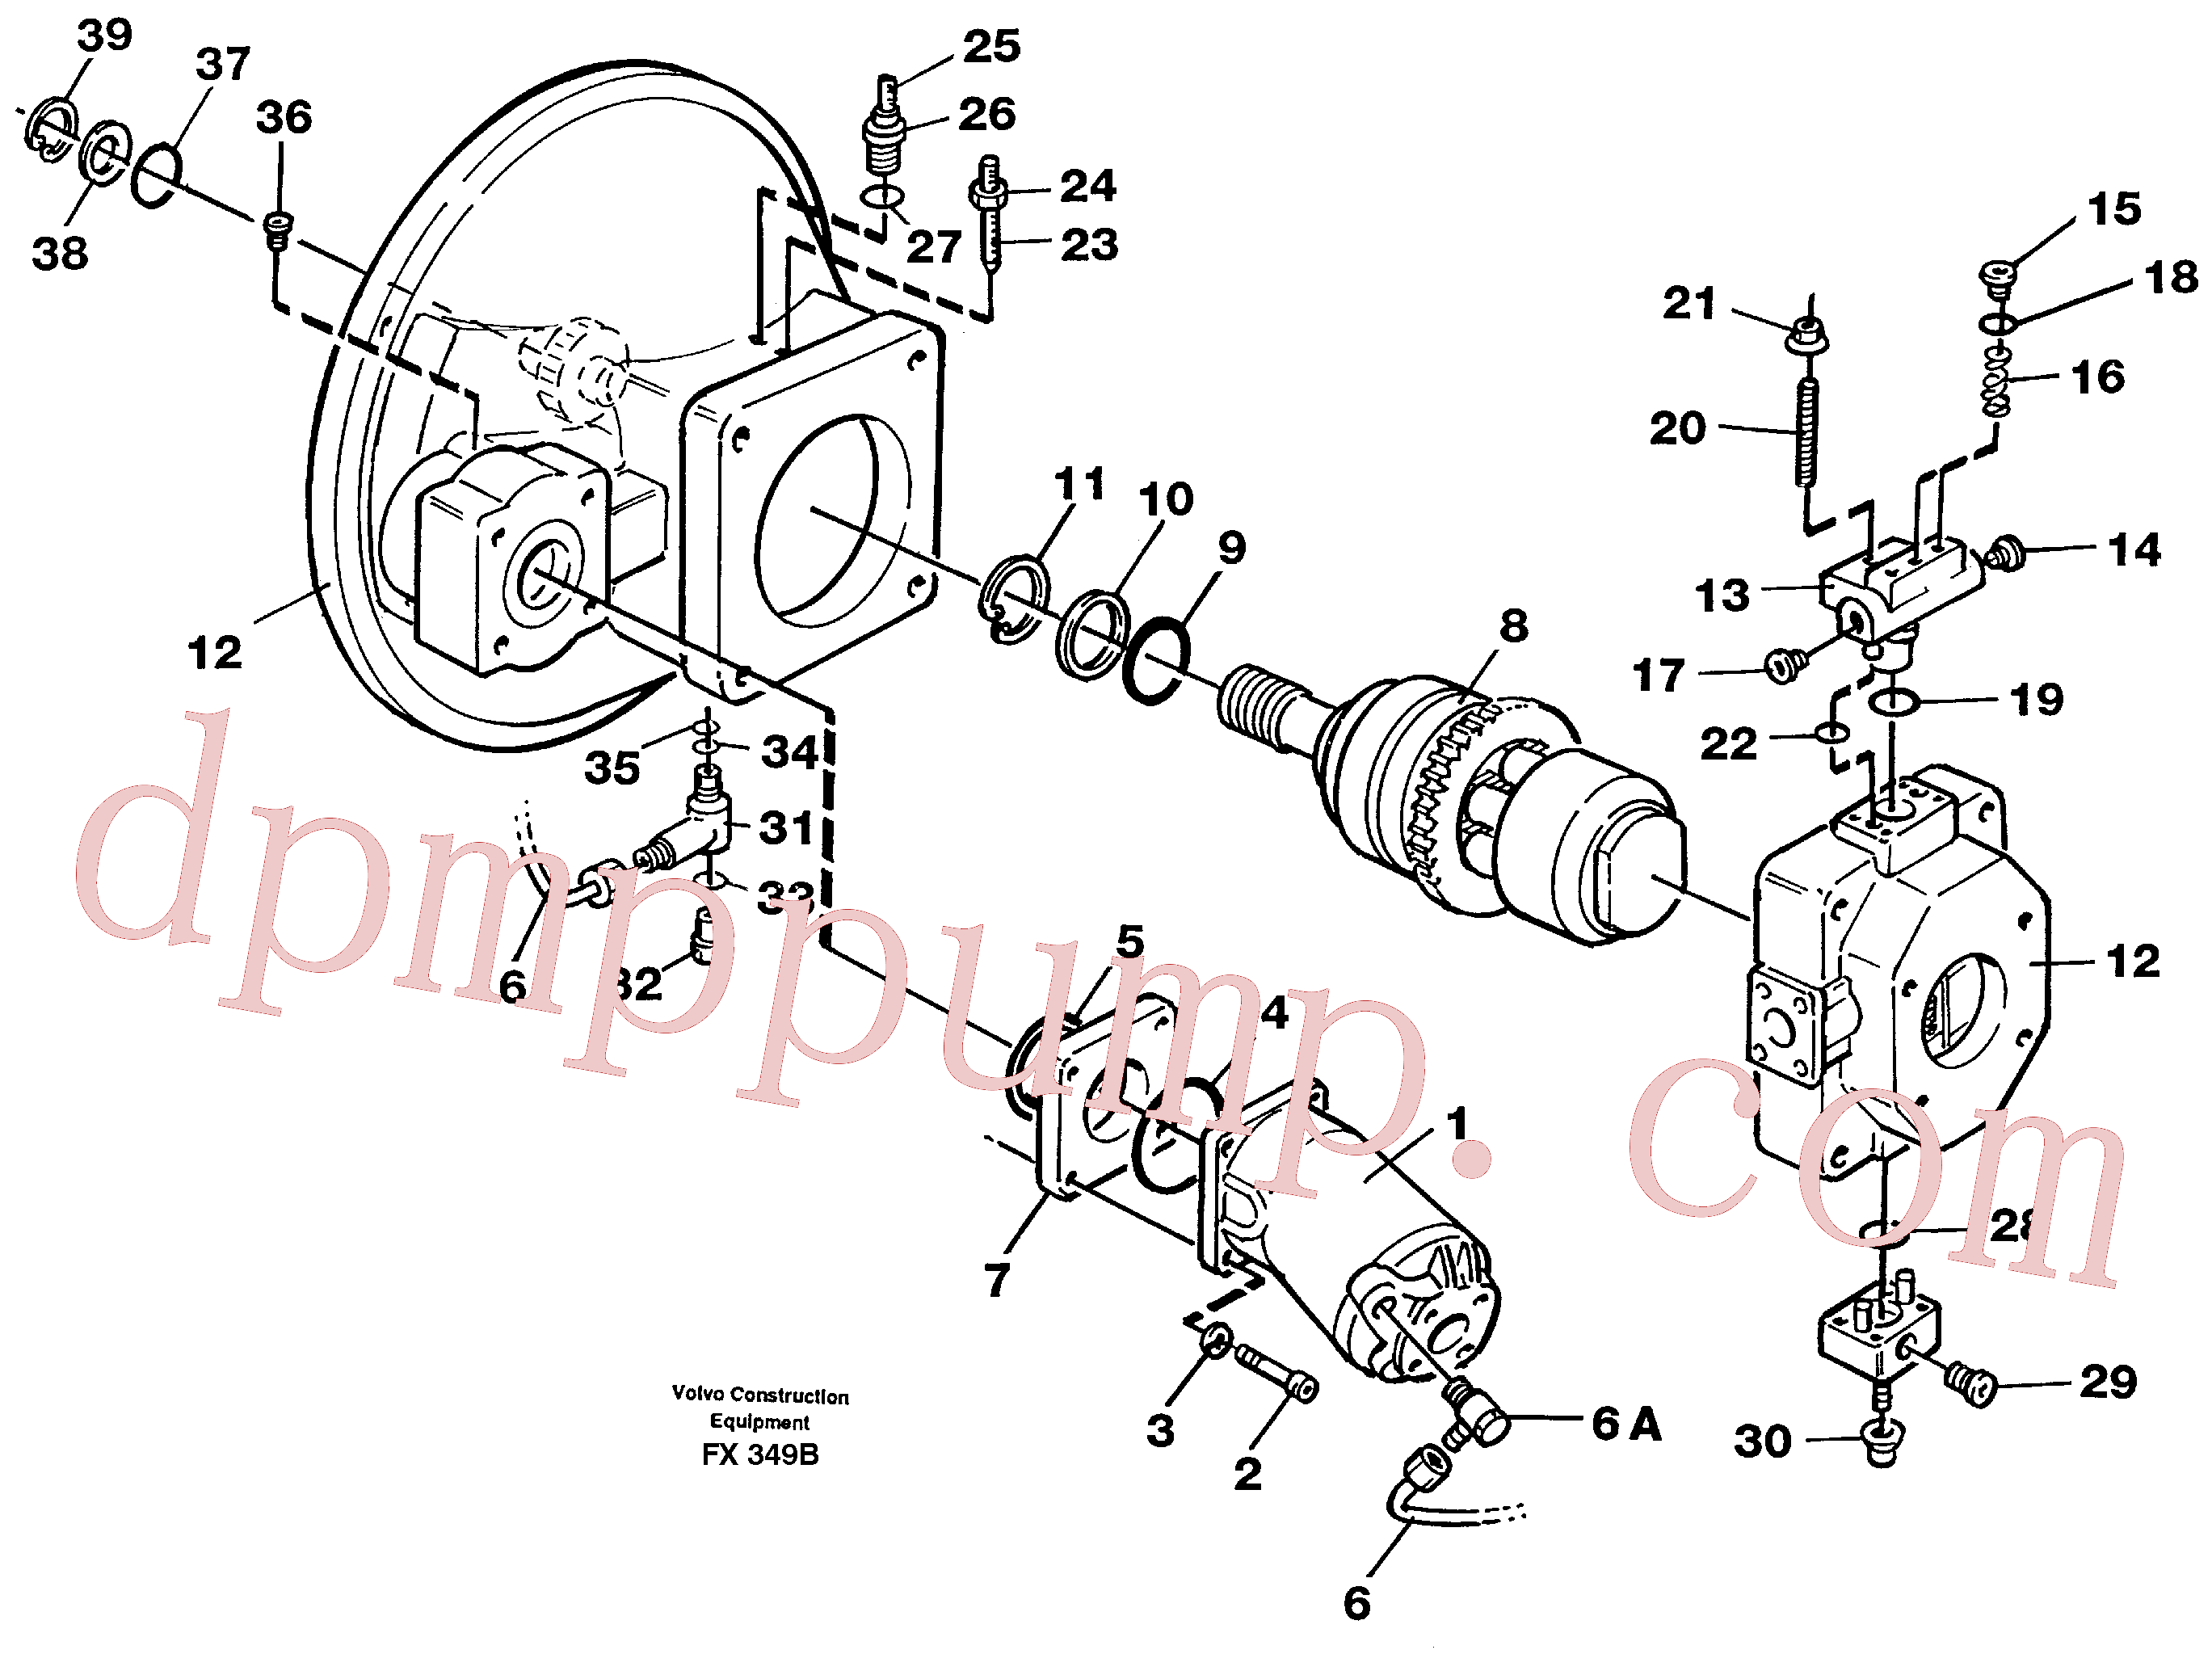 VOE11992753 for Volvo Pump gear box(FX349B assembly)